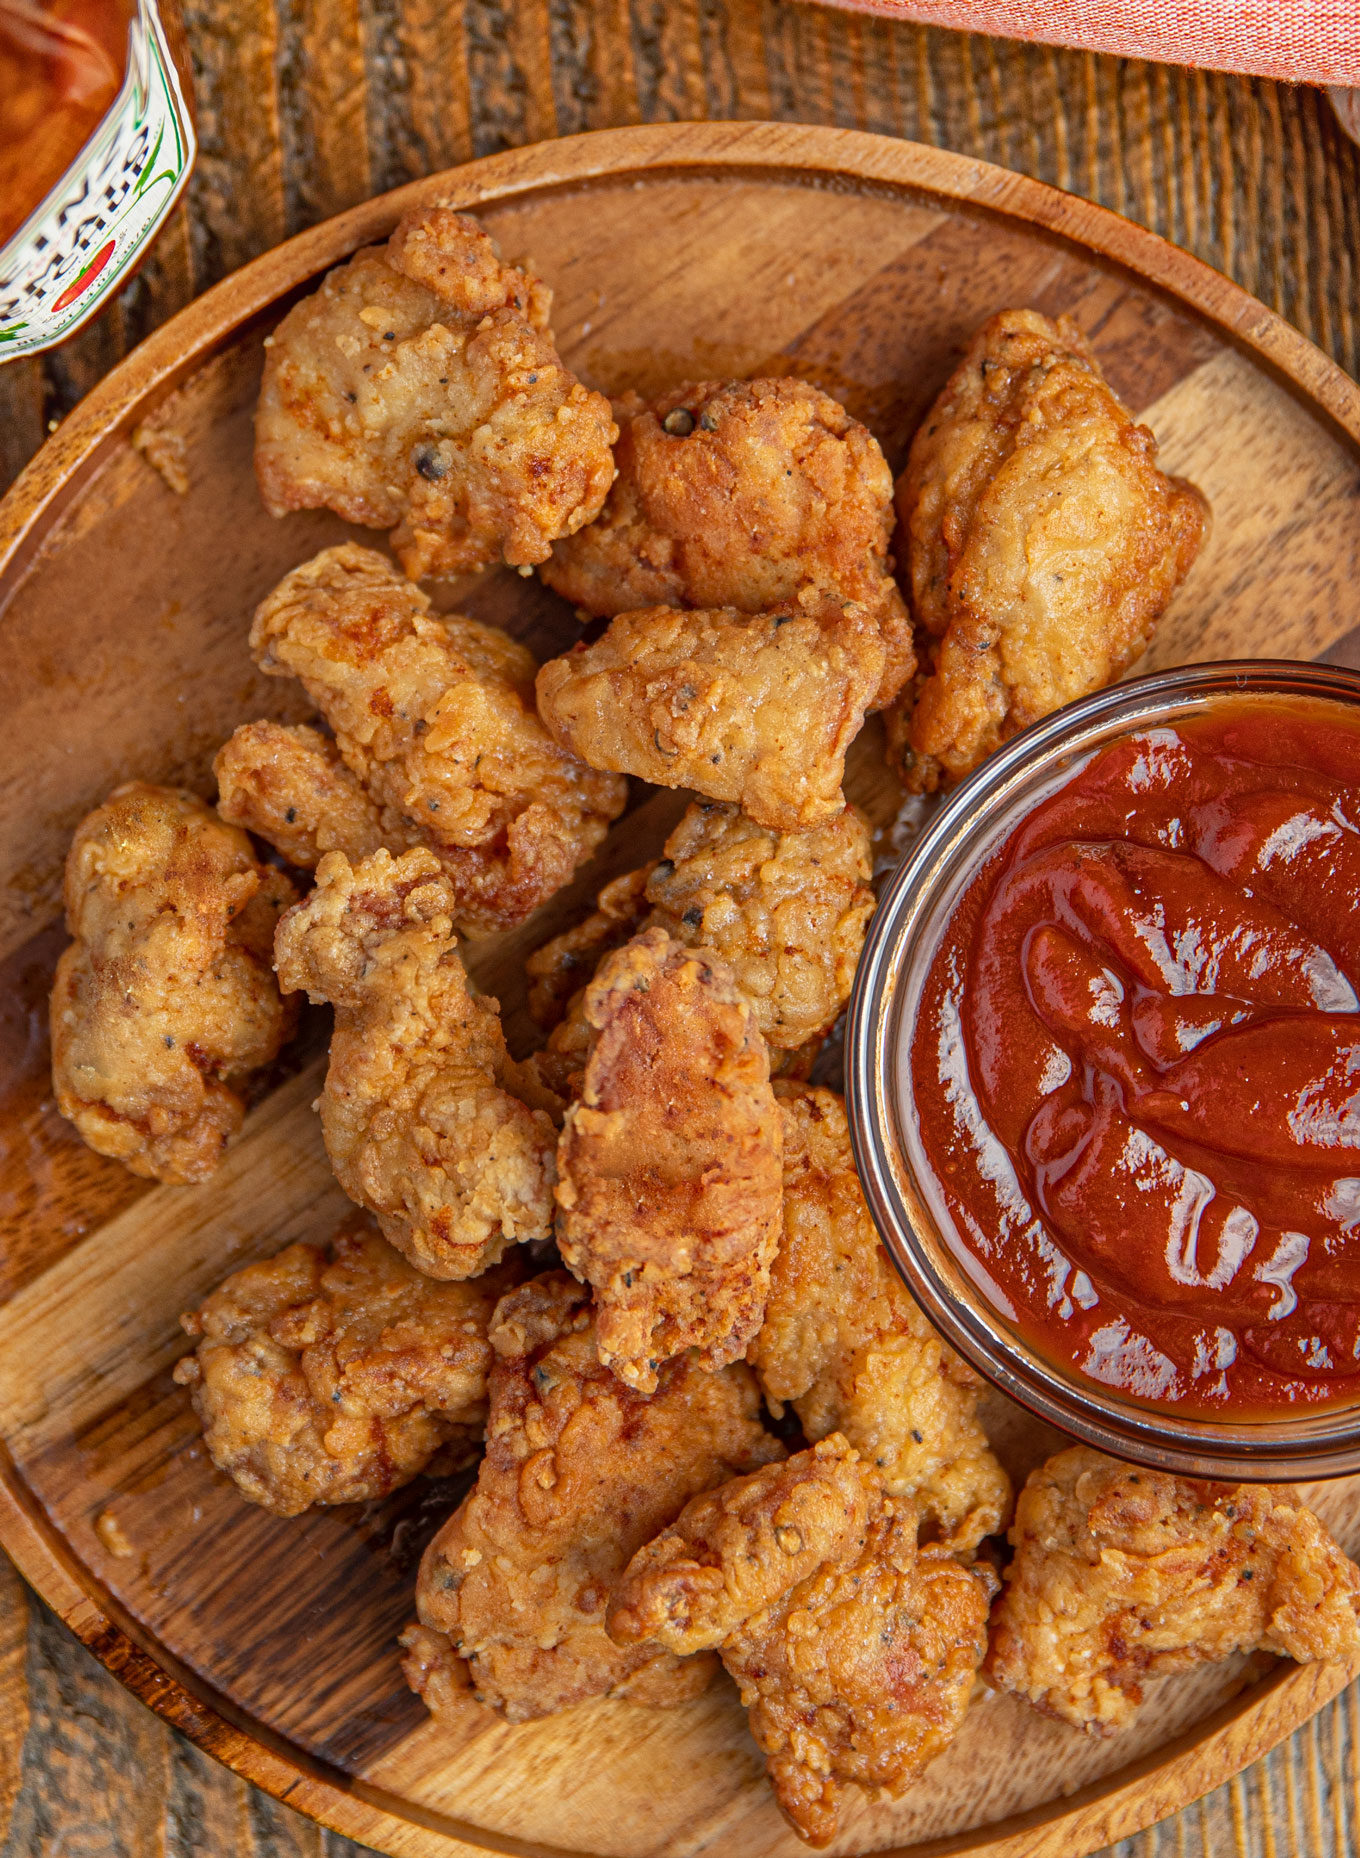 Chicken nuggets on a plate with ketchup